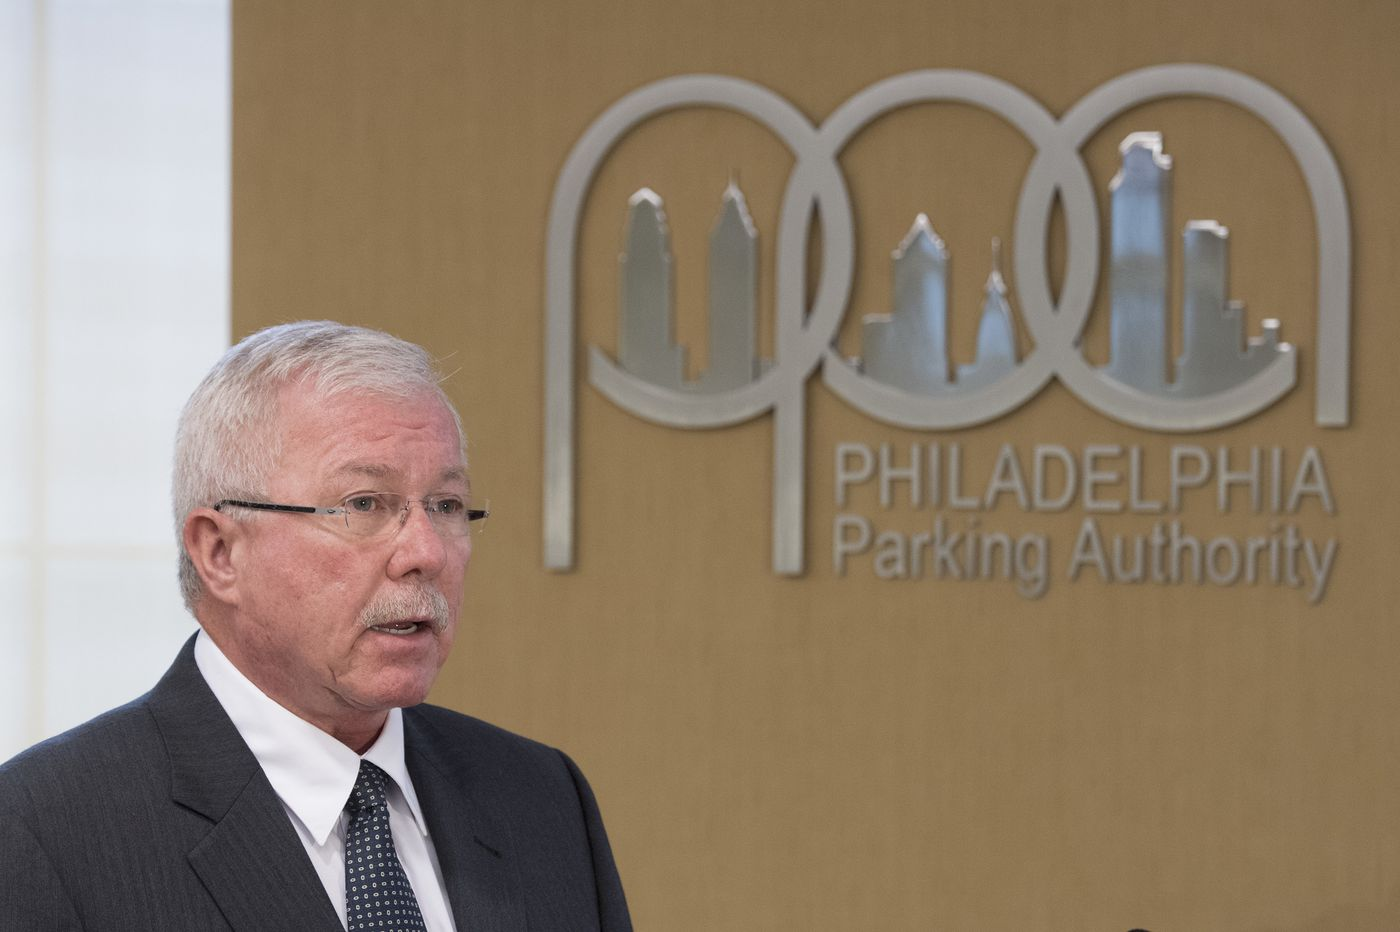 At Philly's Parking Authority, 'family values' need to get the boot | Editorial